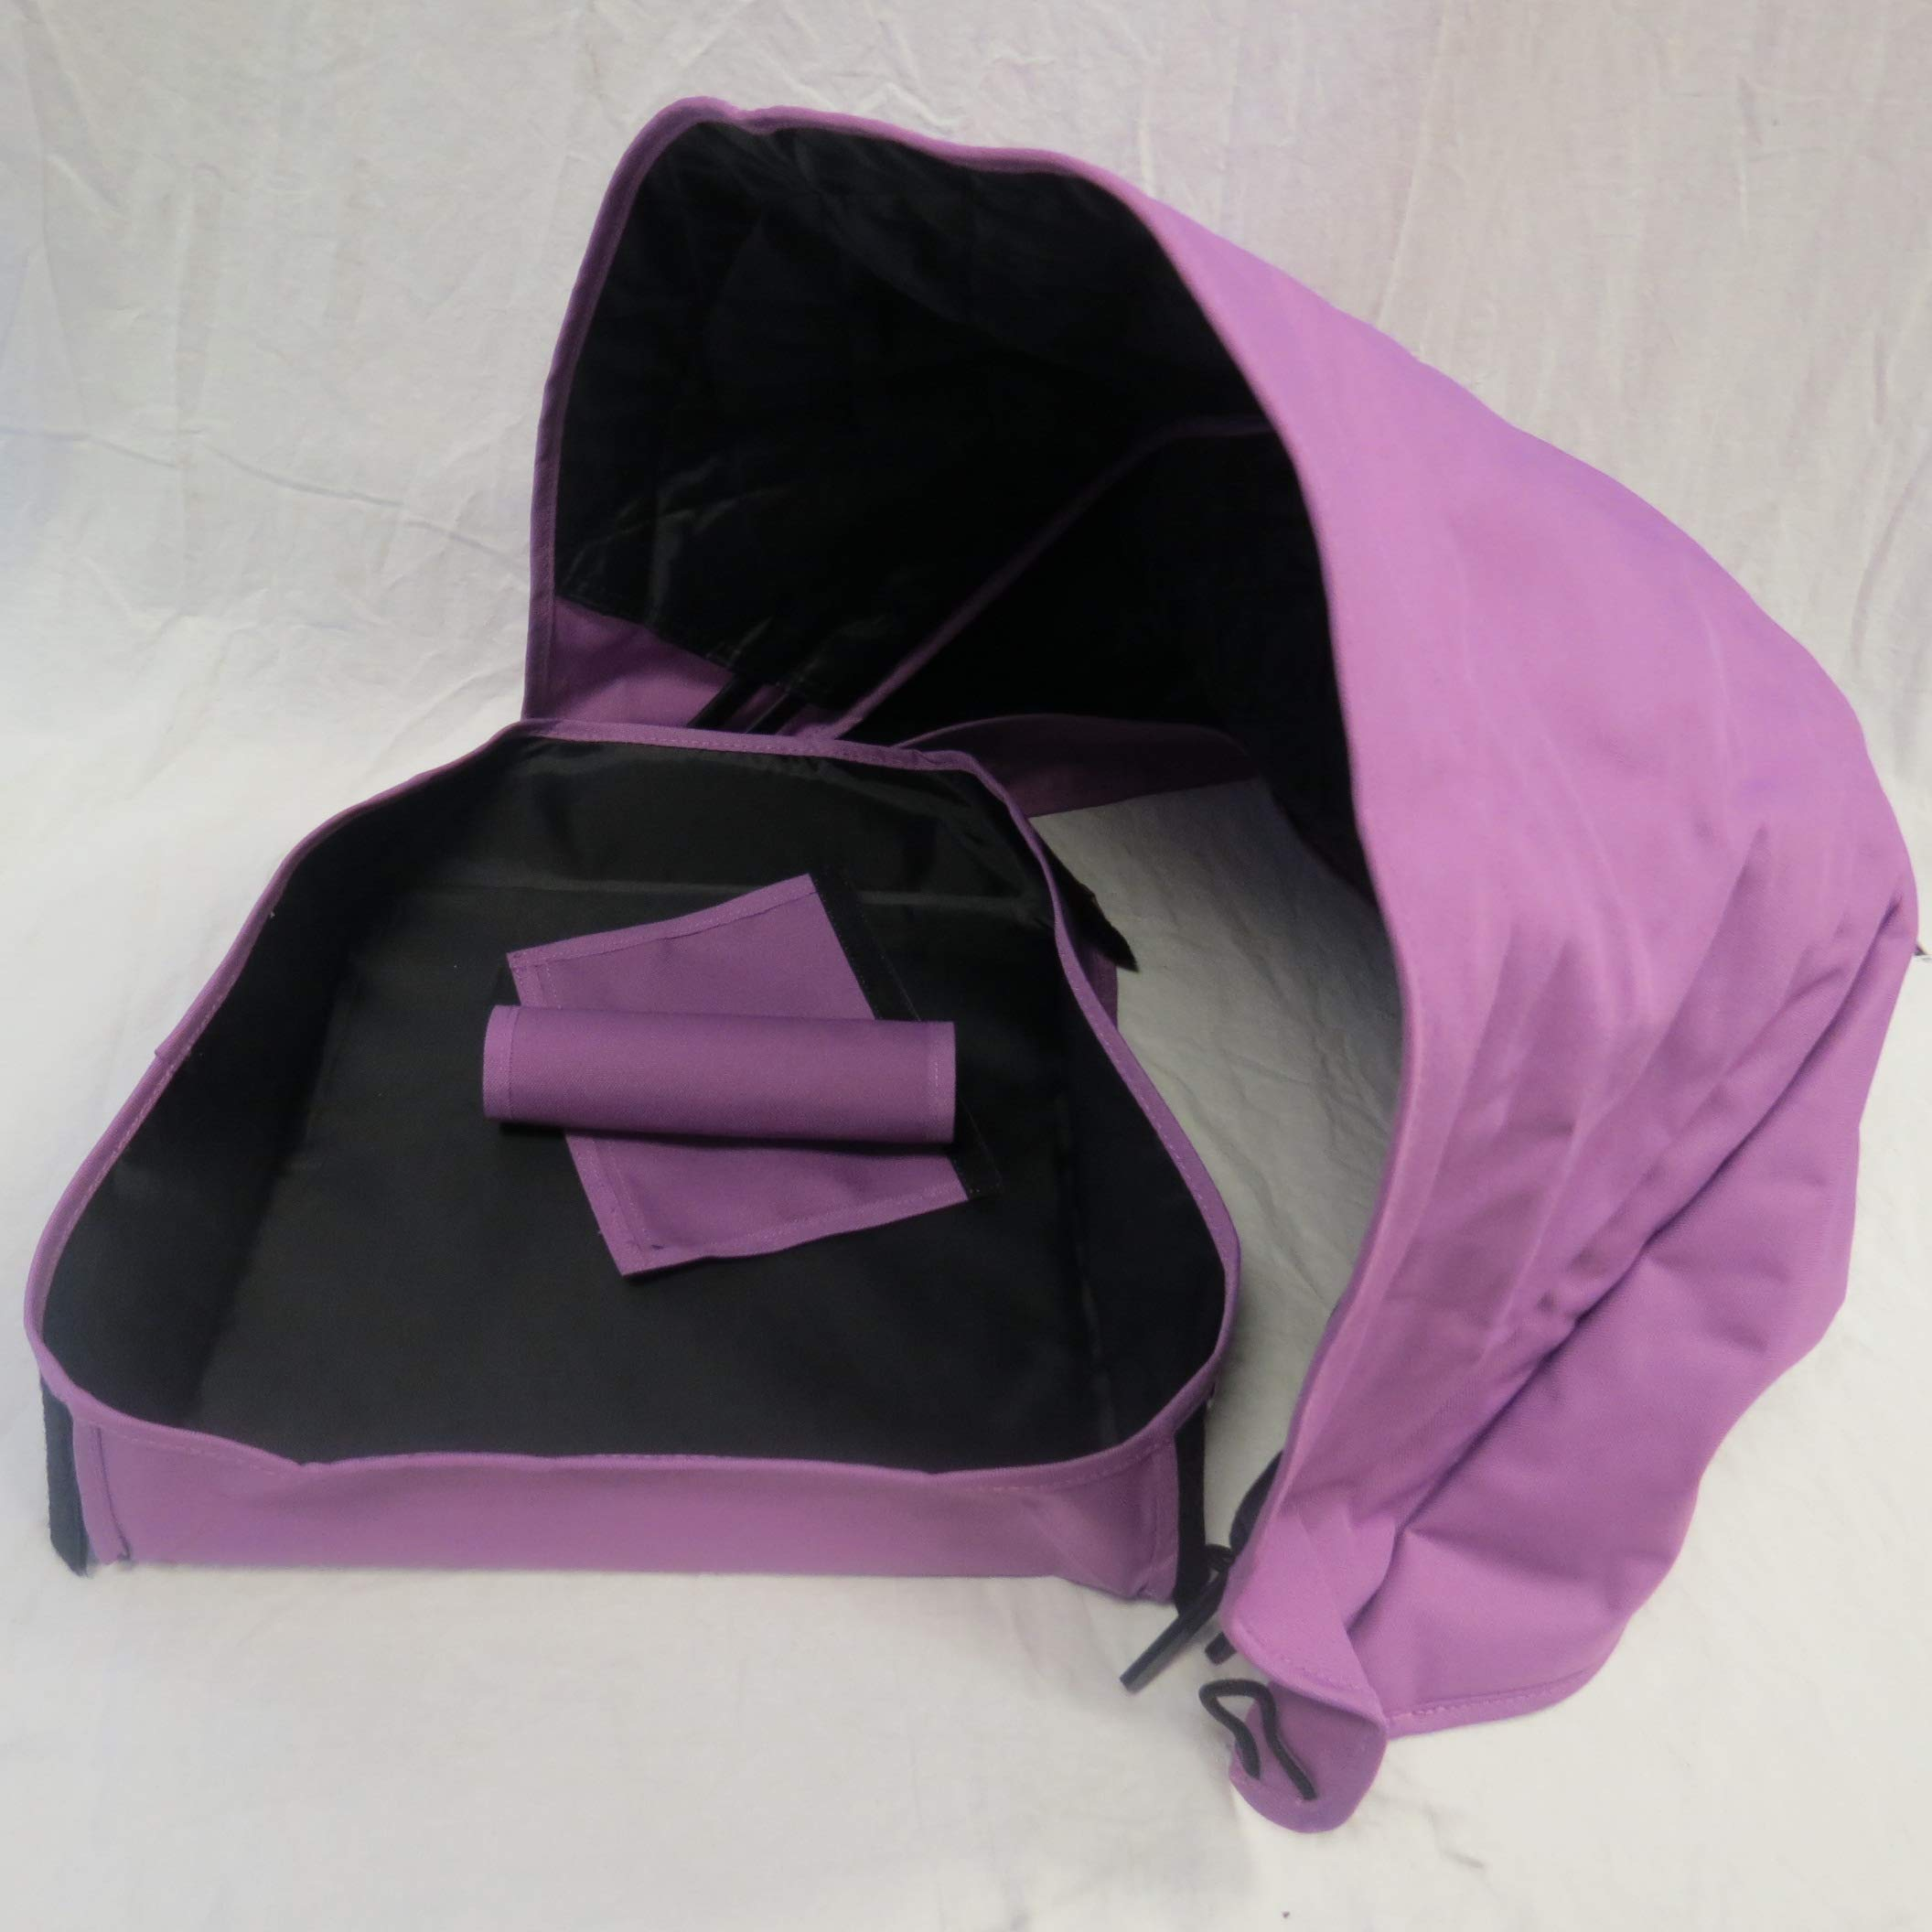 Purple Sun Shade Canopy with Wires and Under Seat Storage Basket Plus Free Handle Bar Covers for Bugaboo Cameleon 1, 2, 3, Frog Baby Child Strollers